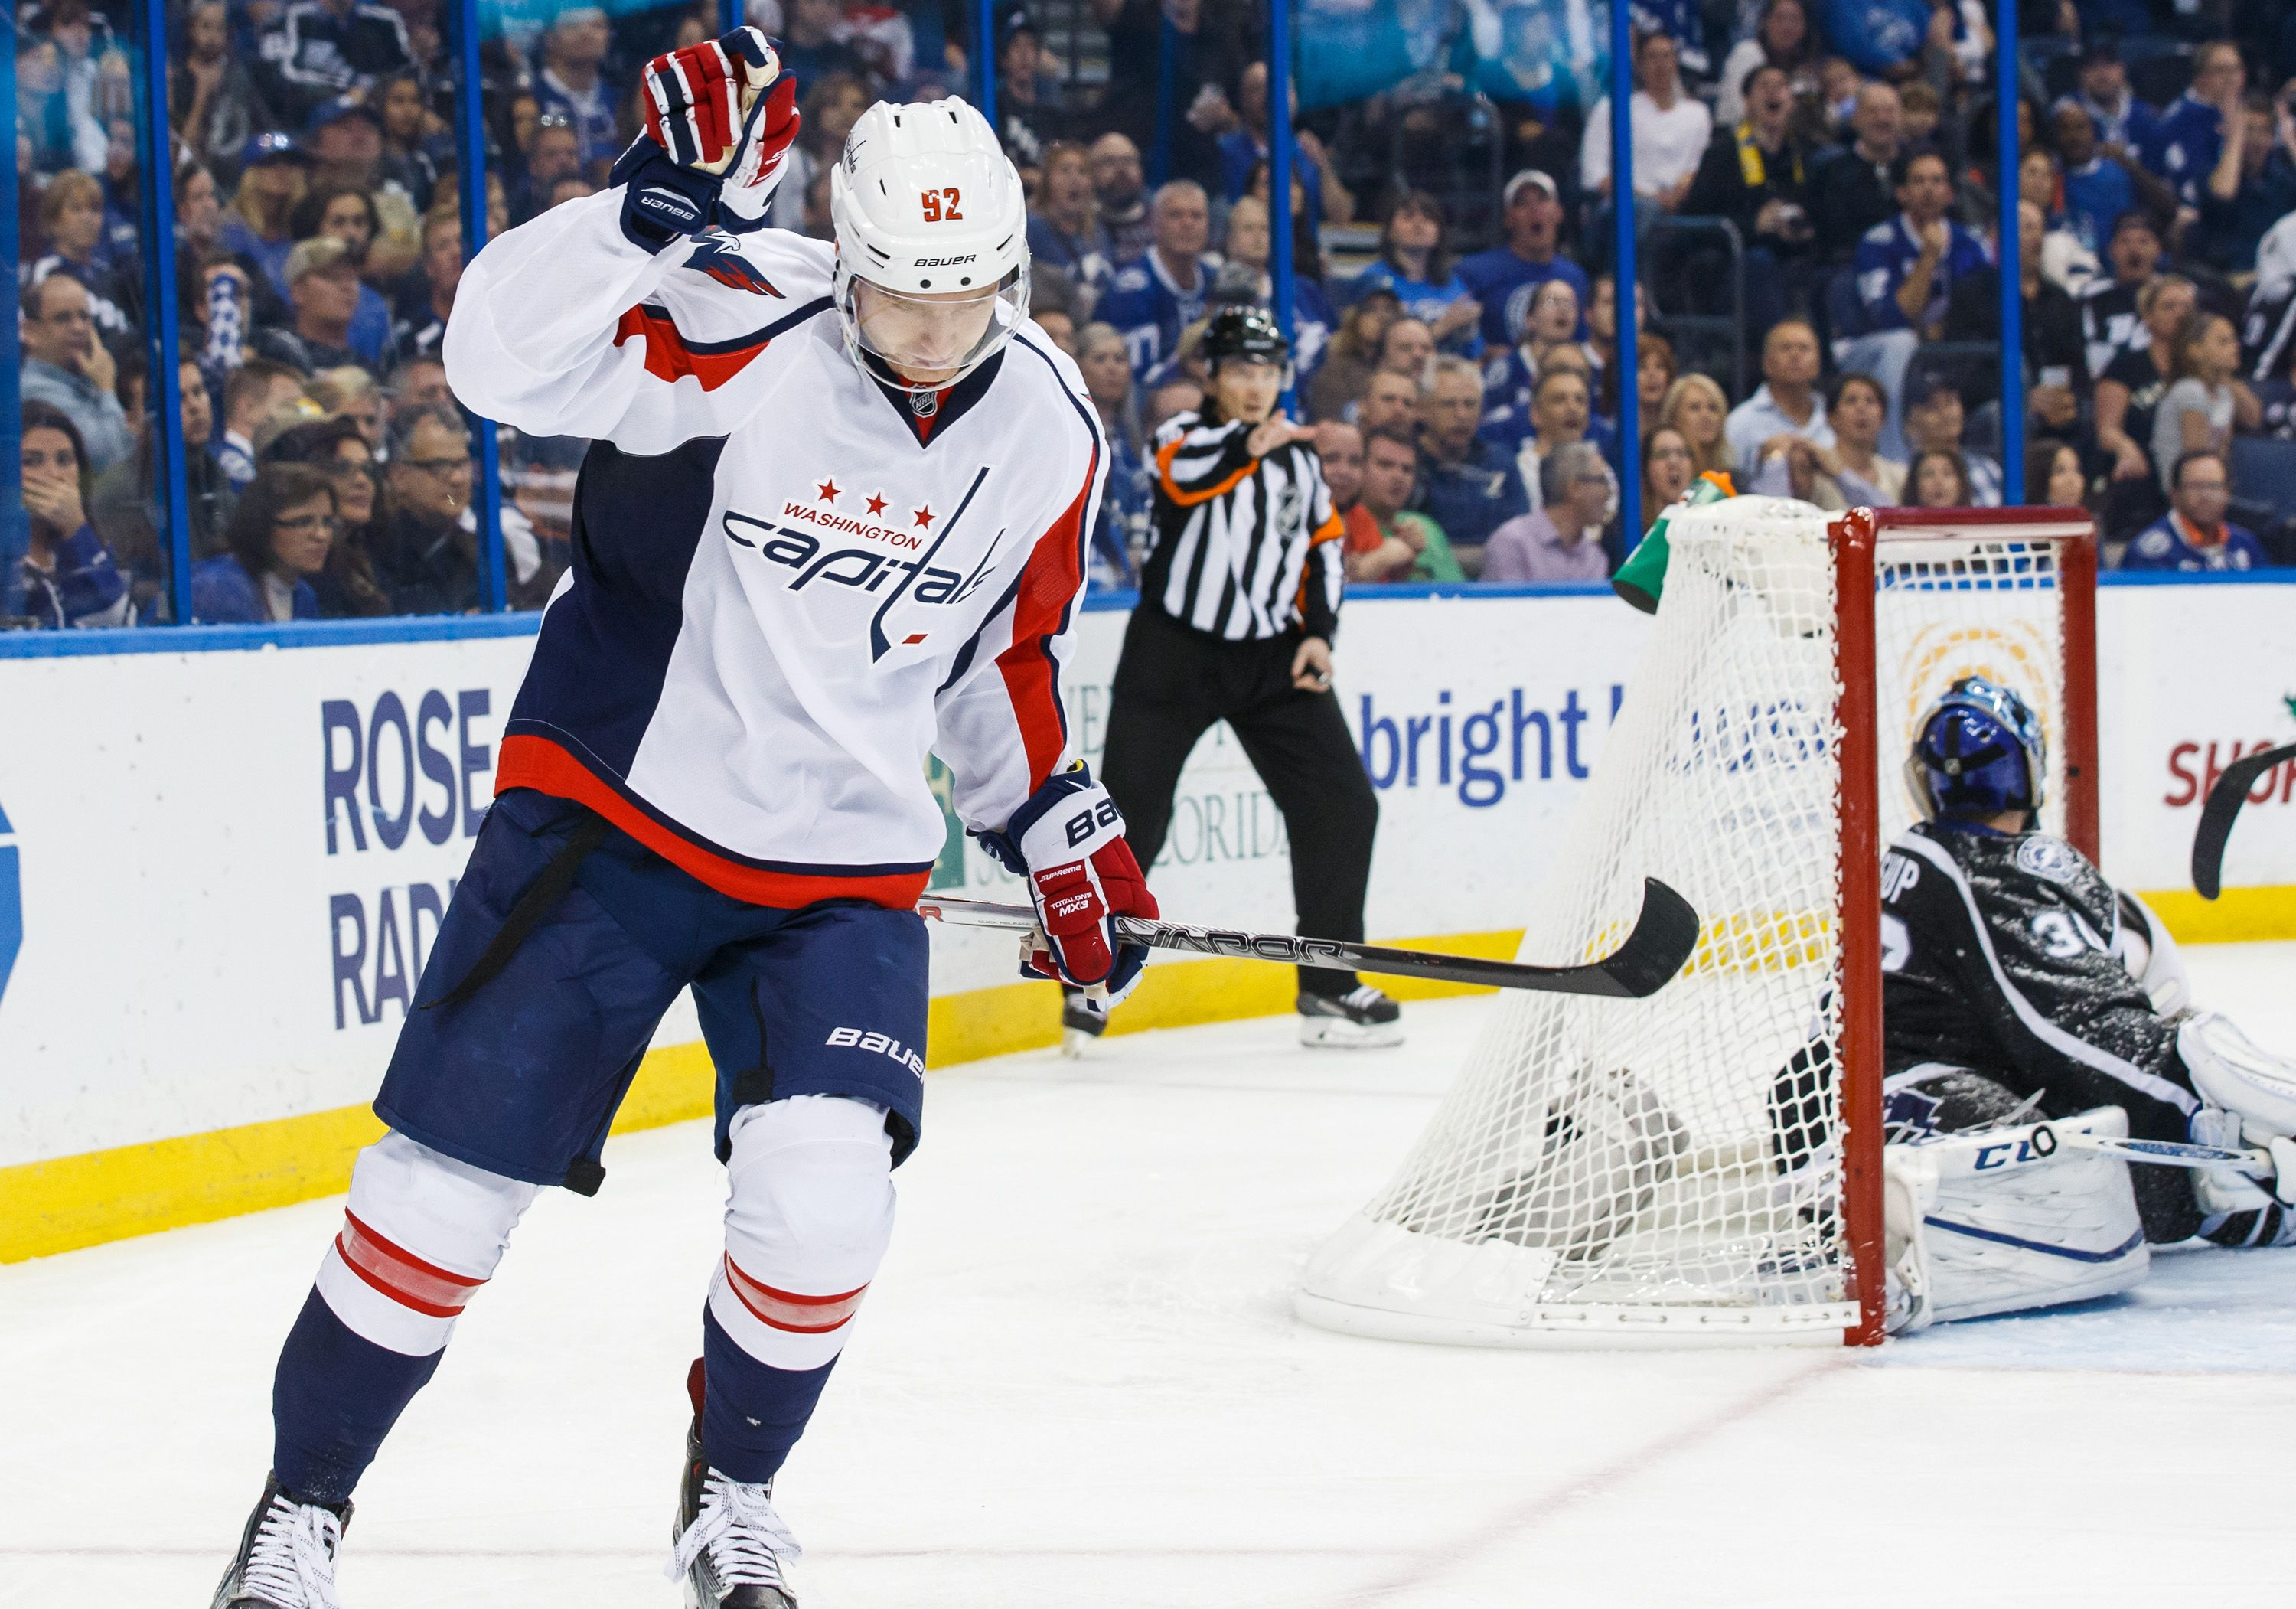 Game Recap Caps Holtby Hold Off Bolts 2 1 Holtby Makes 35 Stops 14 In The 3rd To Lead Caps To 20th Win Http Washington Capitals Cap Hockey Teams